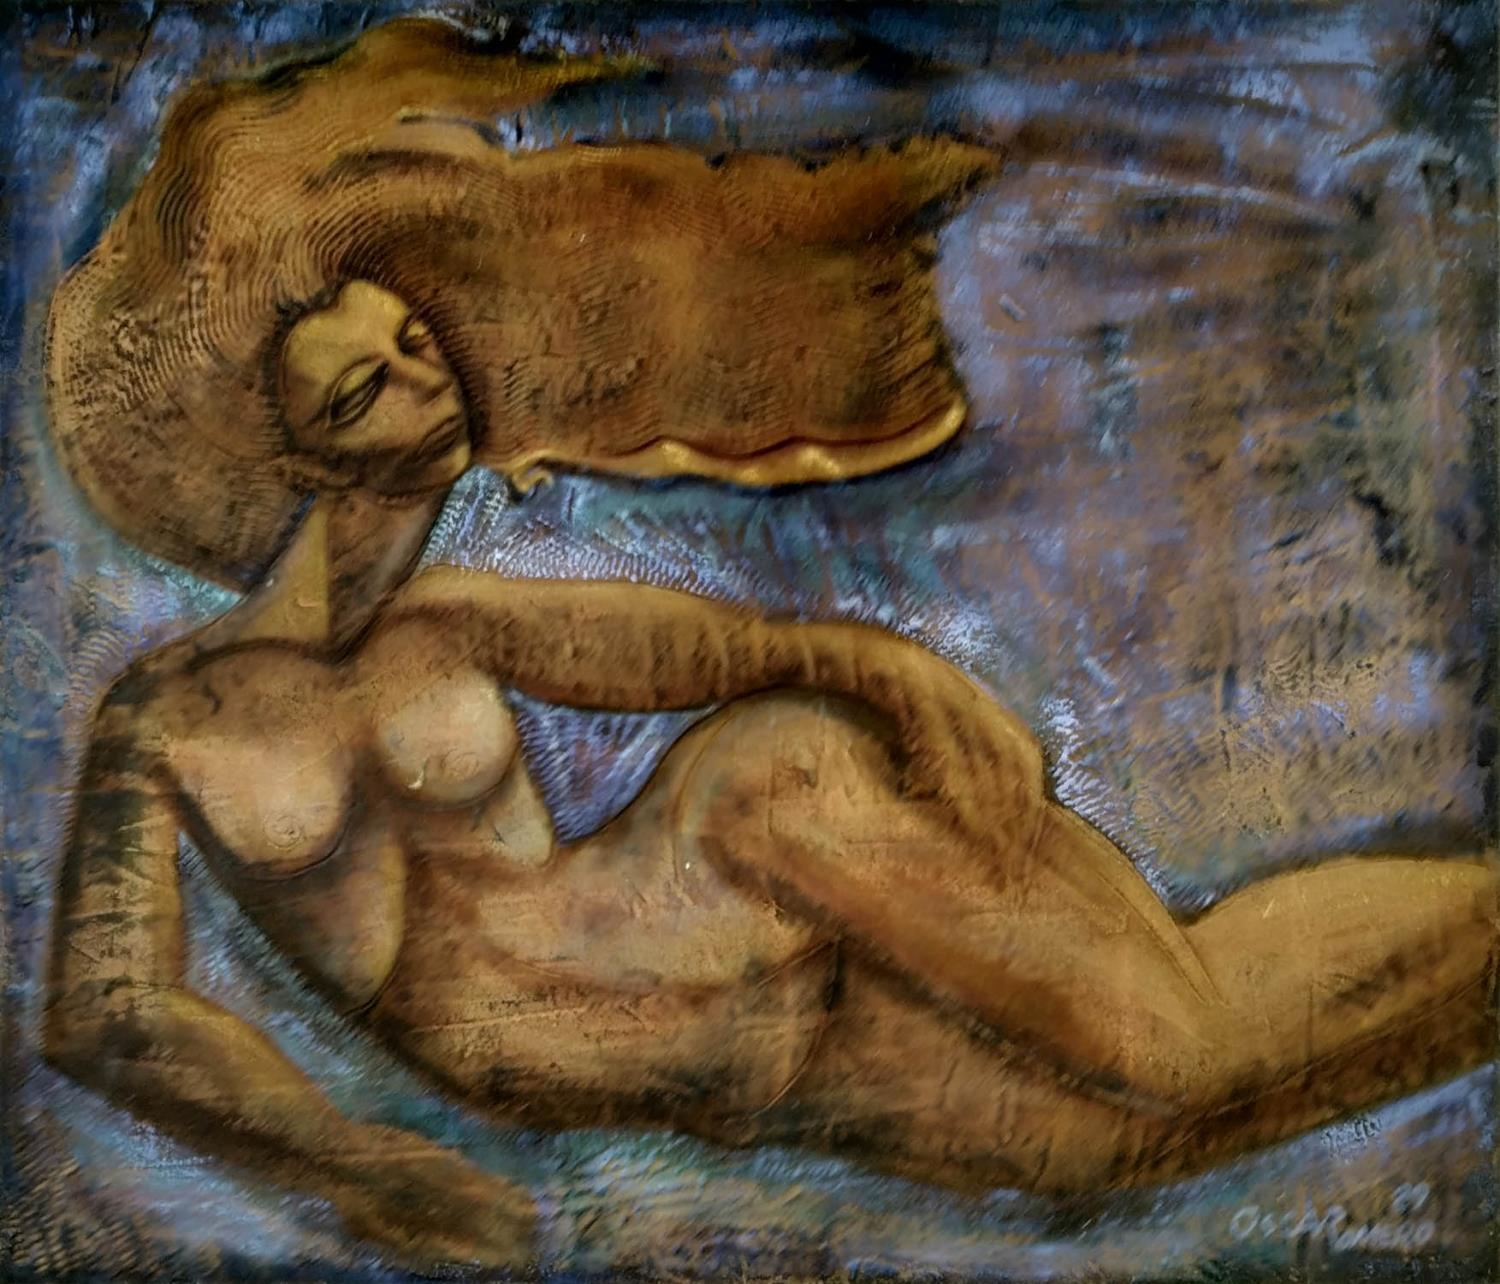 OSCAR ROMERO (Mexico/USA 1954) 'La Cirena - The Mermaid', oil on canvas, 102cm x 127cm, signed,